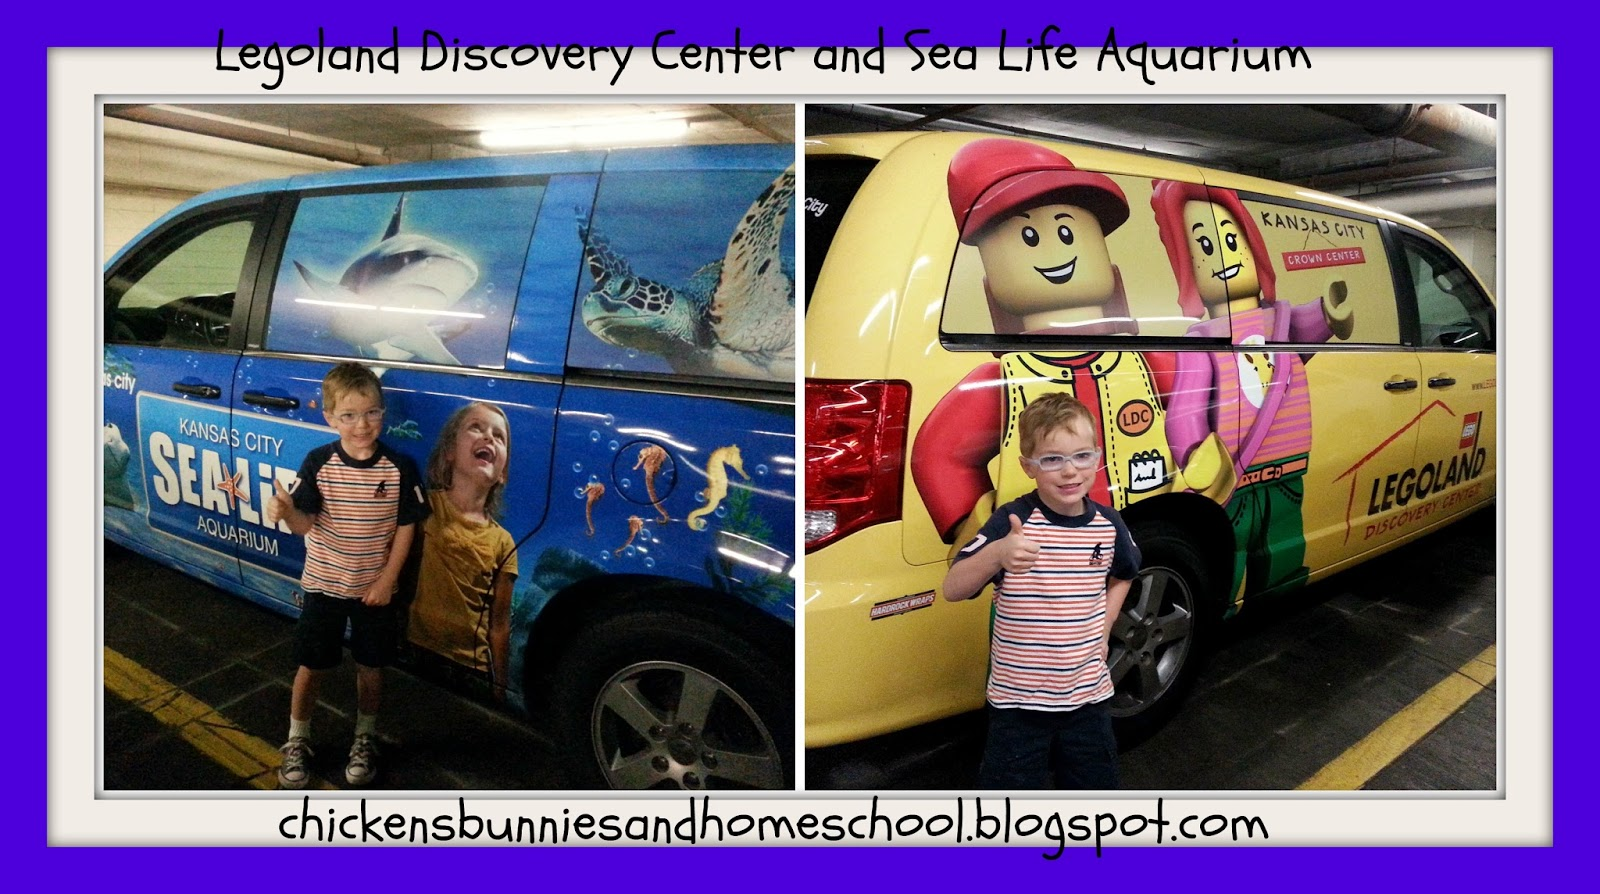 Chickens Bunnies And Homeschool Legoland Discovery